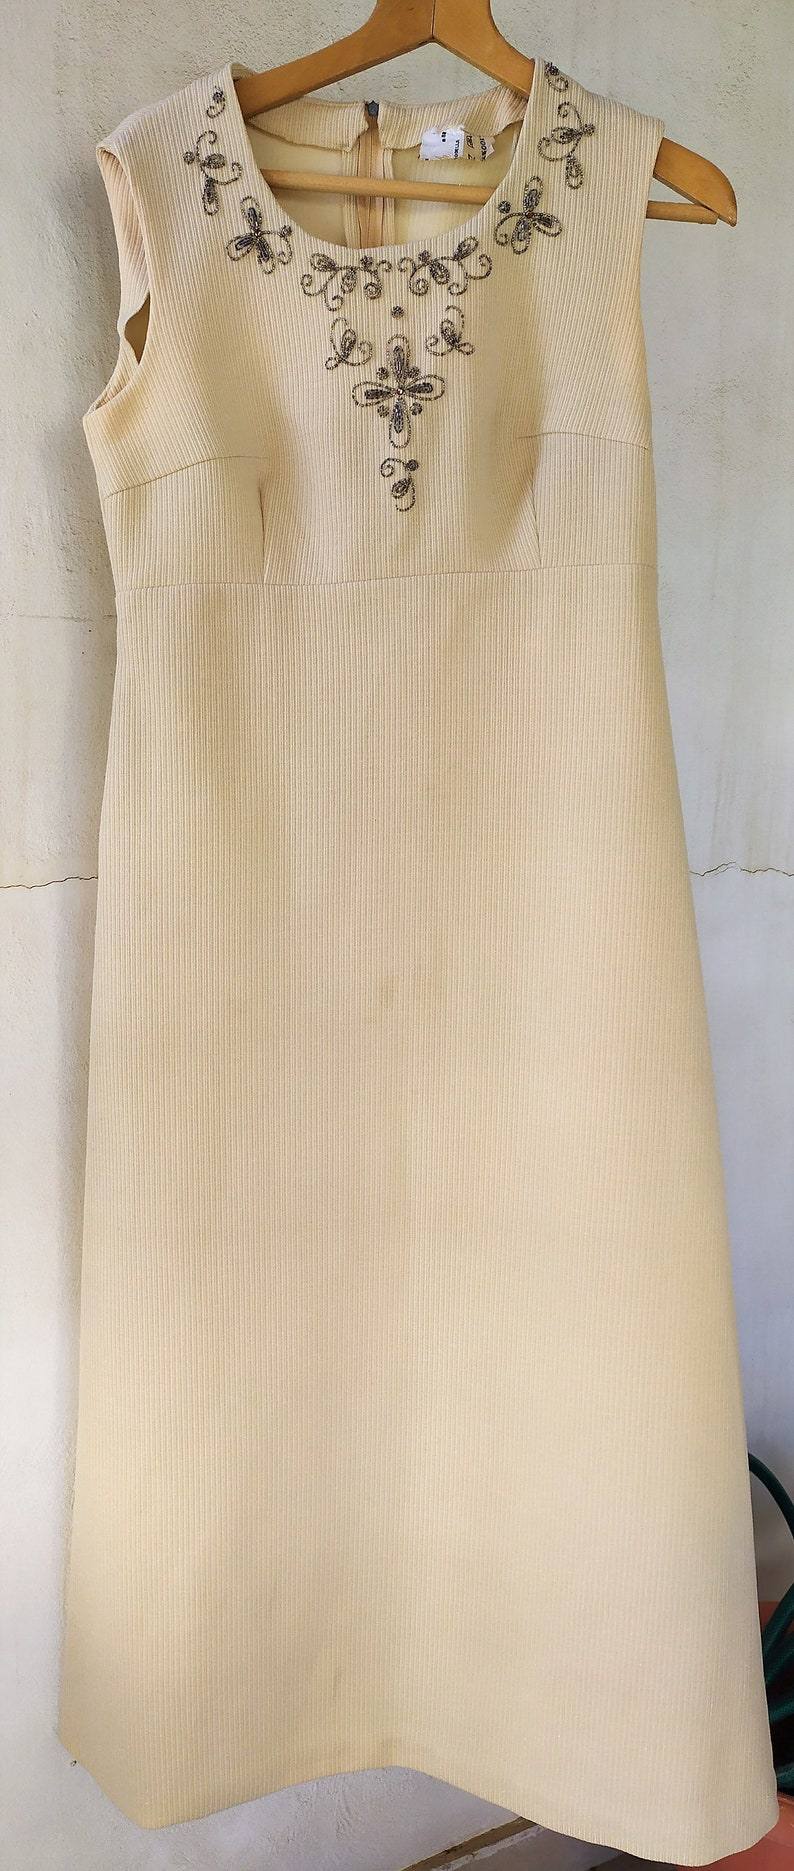 Long Beige Dress 70/'s A-Line Ankle Hem Length Sleeveless Decorated with Beads Retro style Vintage Women/'s Clothing Small size